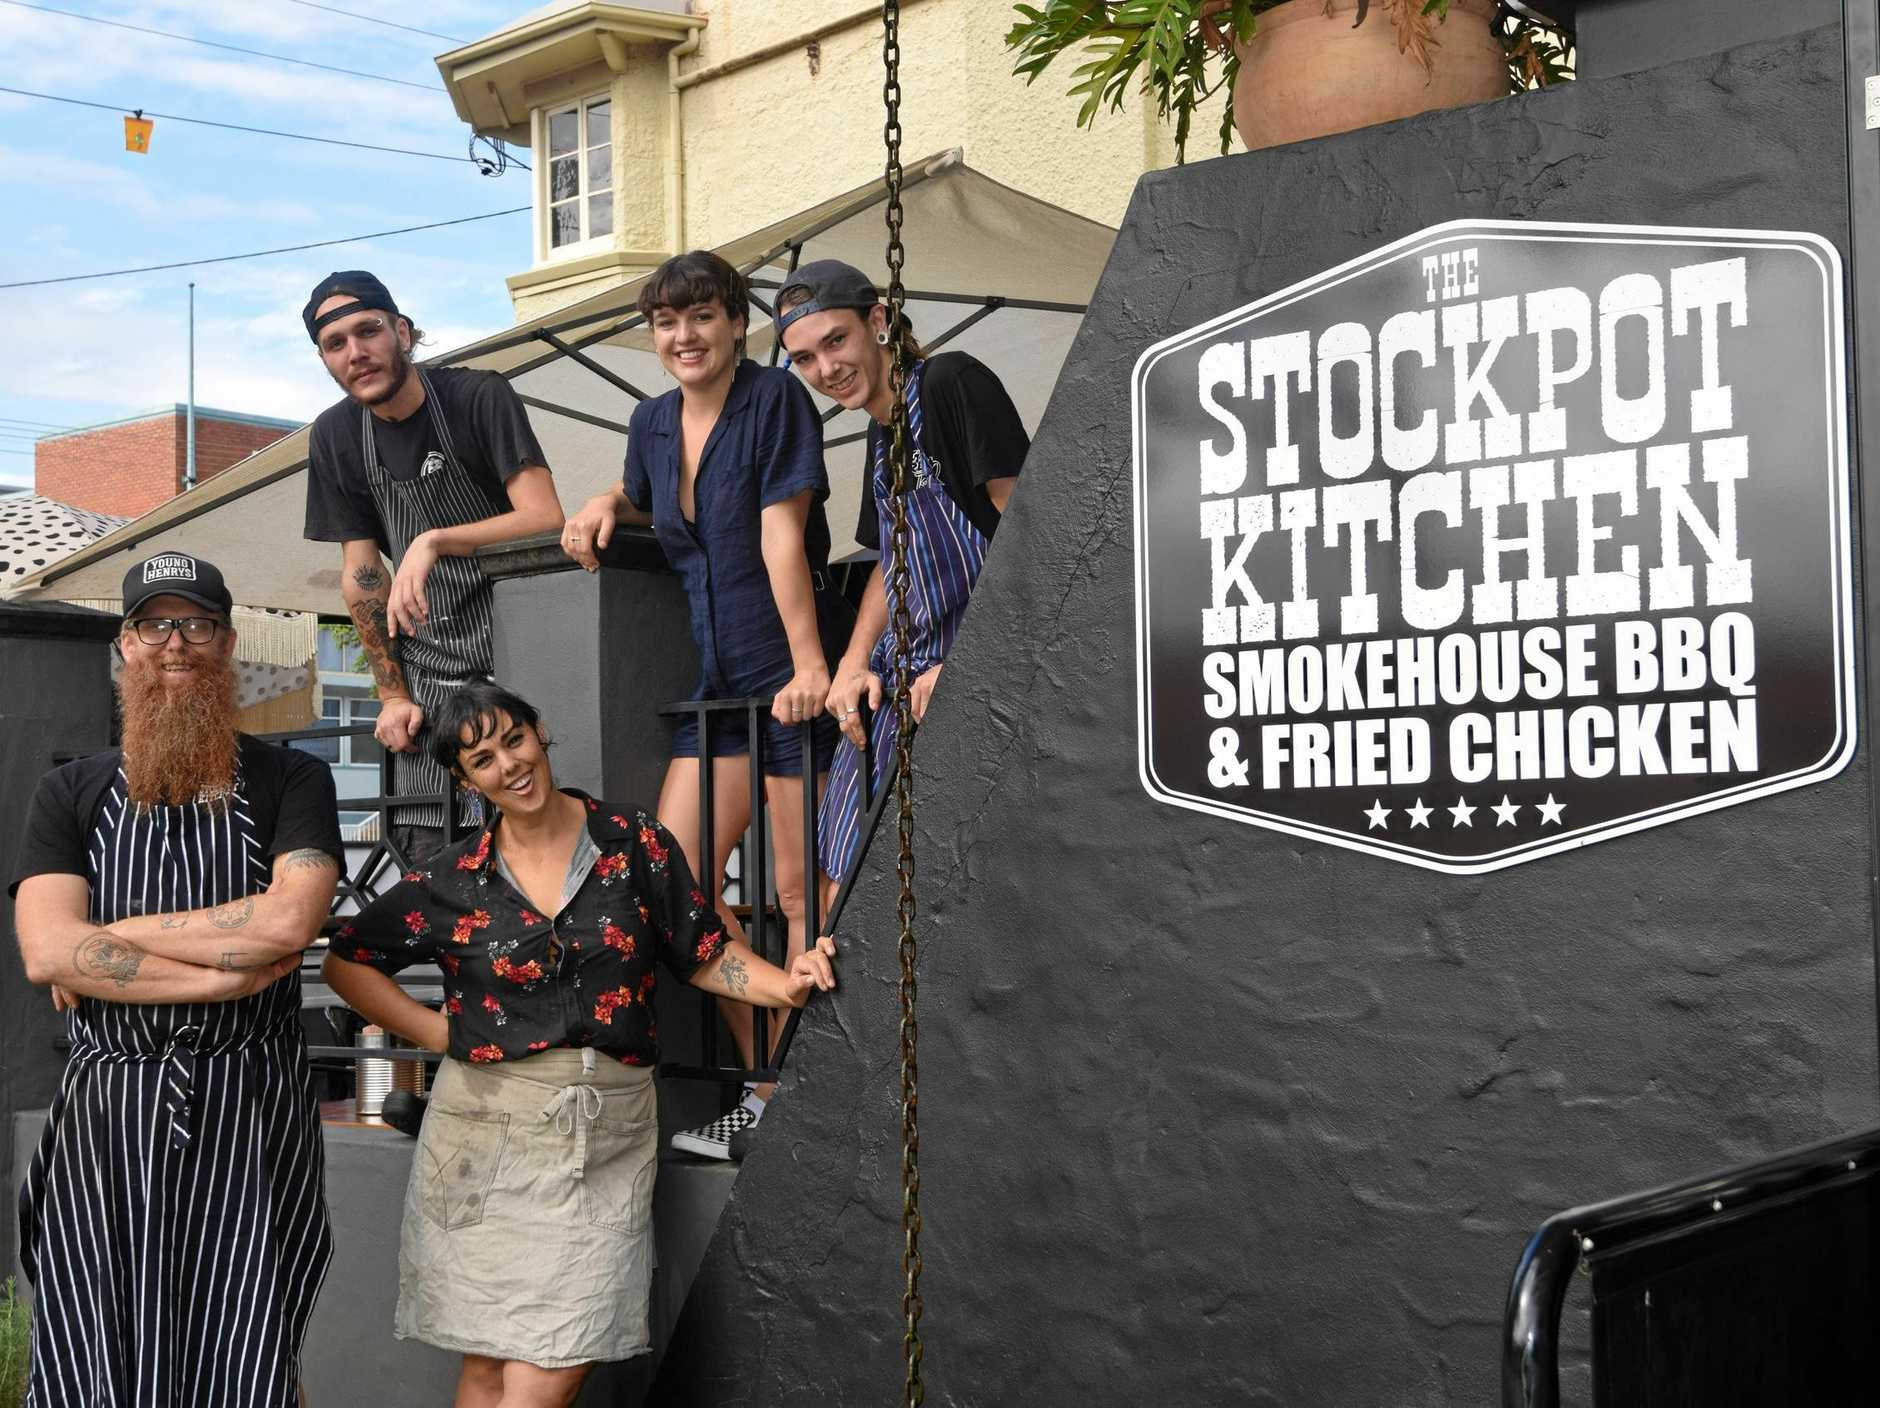 HUGE SUCCESS: The Stockpot Kitchen owners Gray and Jen Stockdale, as well as their team, have plenty to celebrate after an